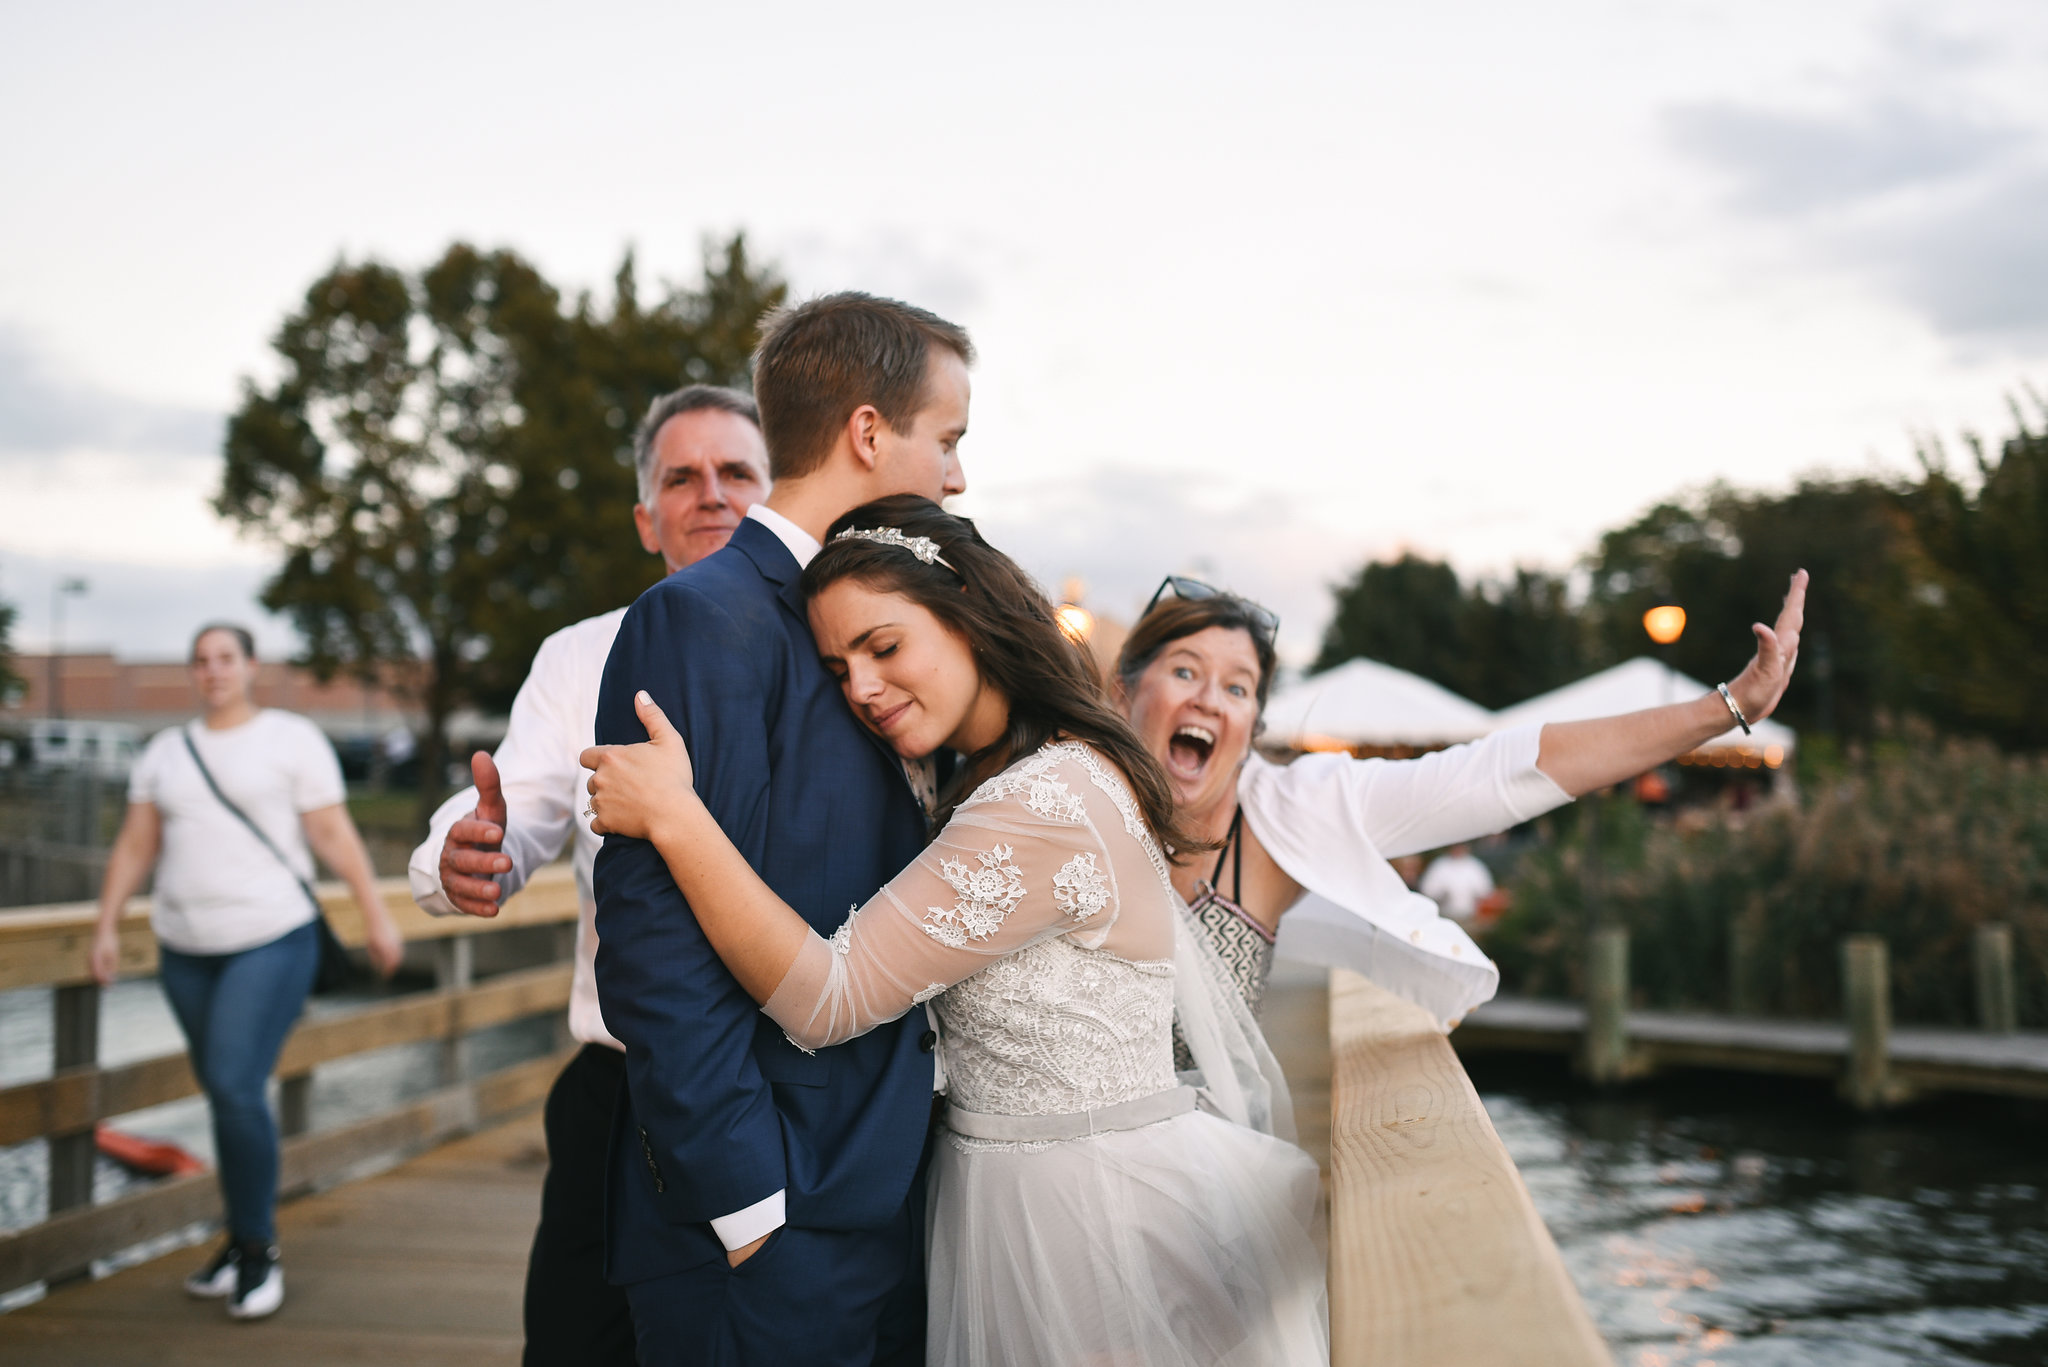 Baltimore, Canton, Modern, Outdoor Reception, Maryland Wedding Photographer, Romantic, Classic, Boston Street Pier Park, Portrait of bride and groom crashed by friends, Fun photo